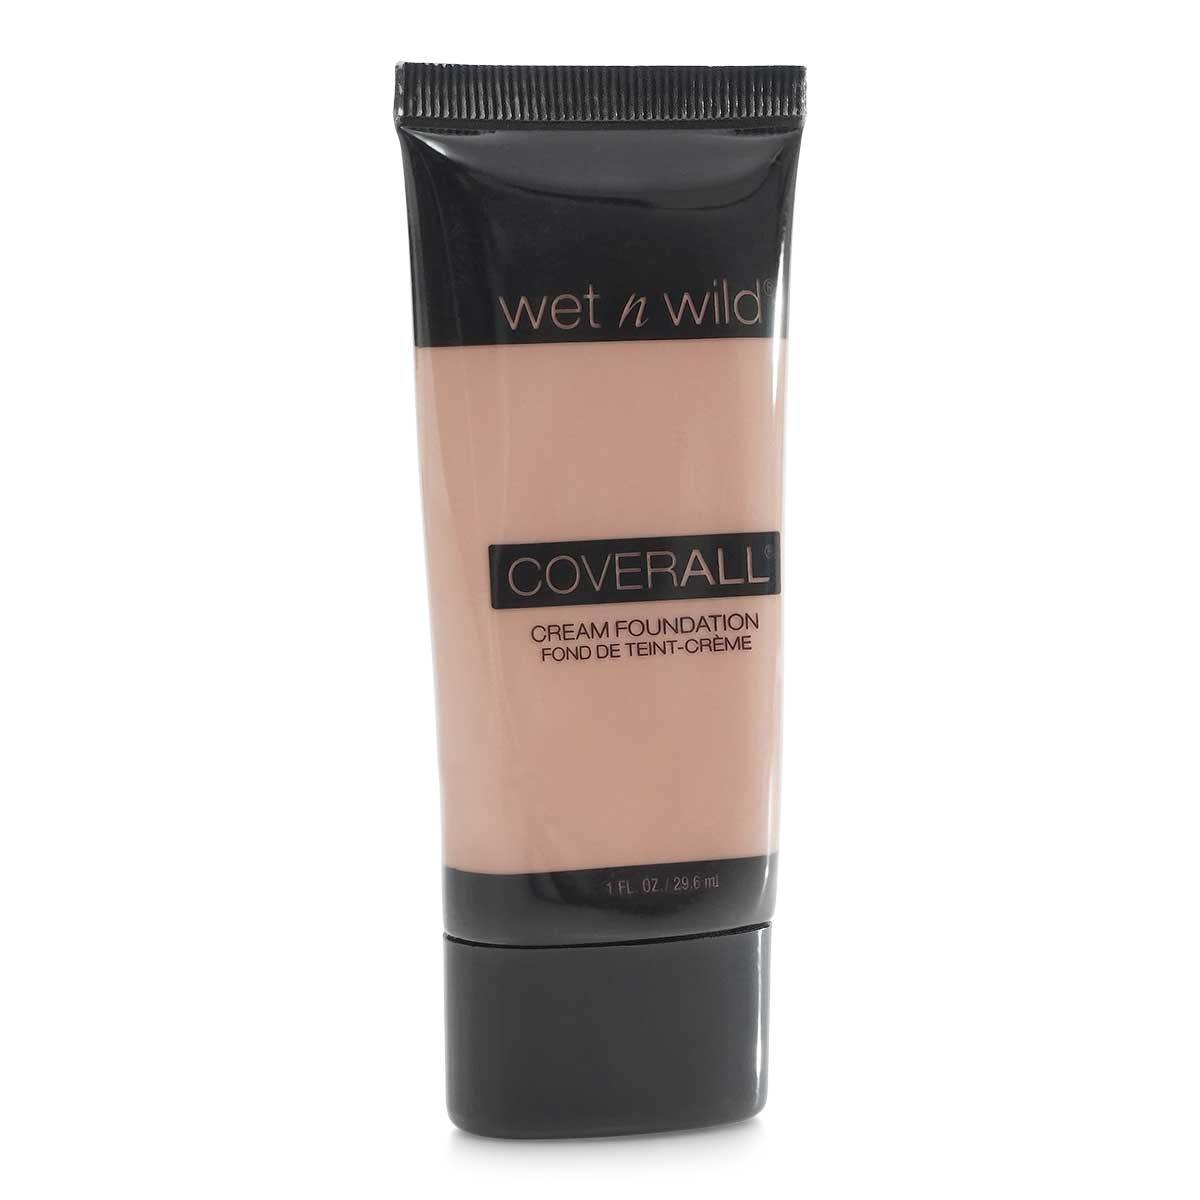 Wet n Wild Cover All Cream Foundation (24/cs)